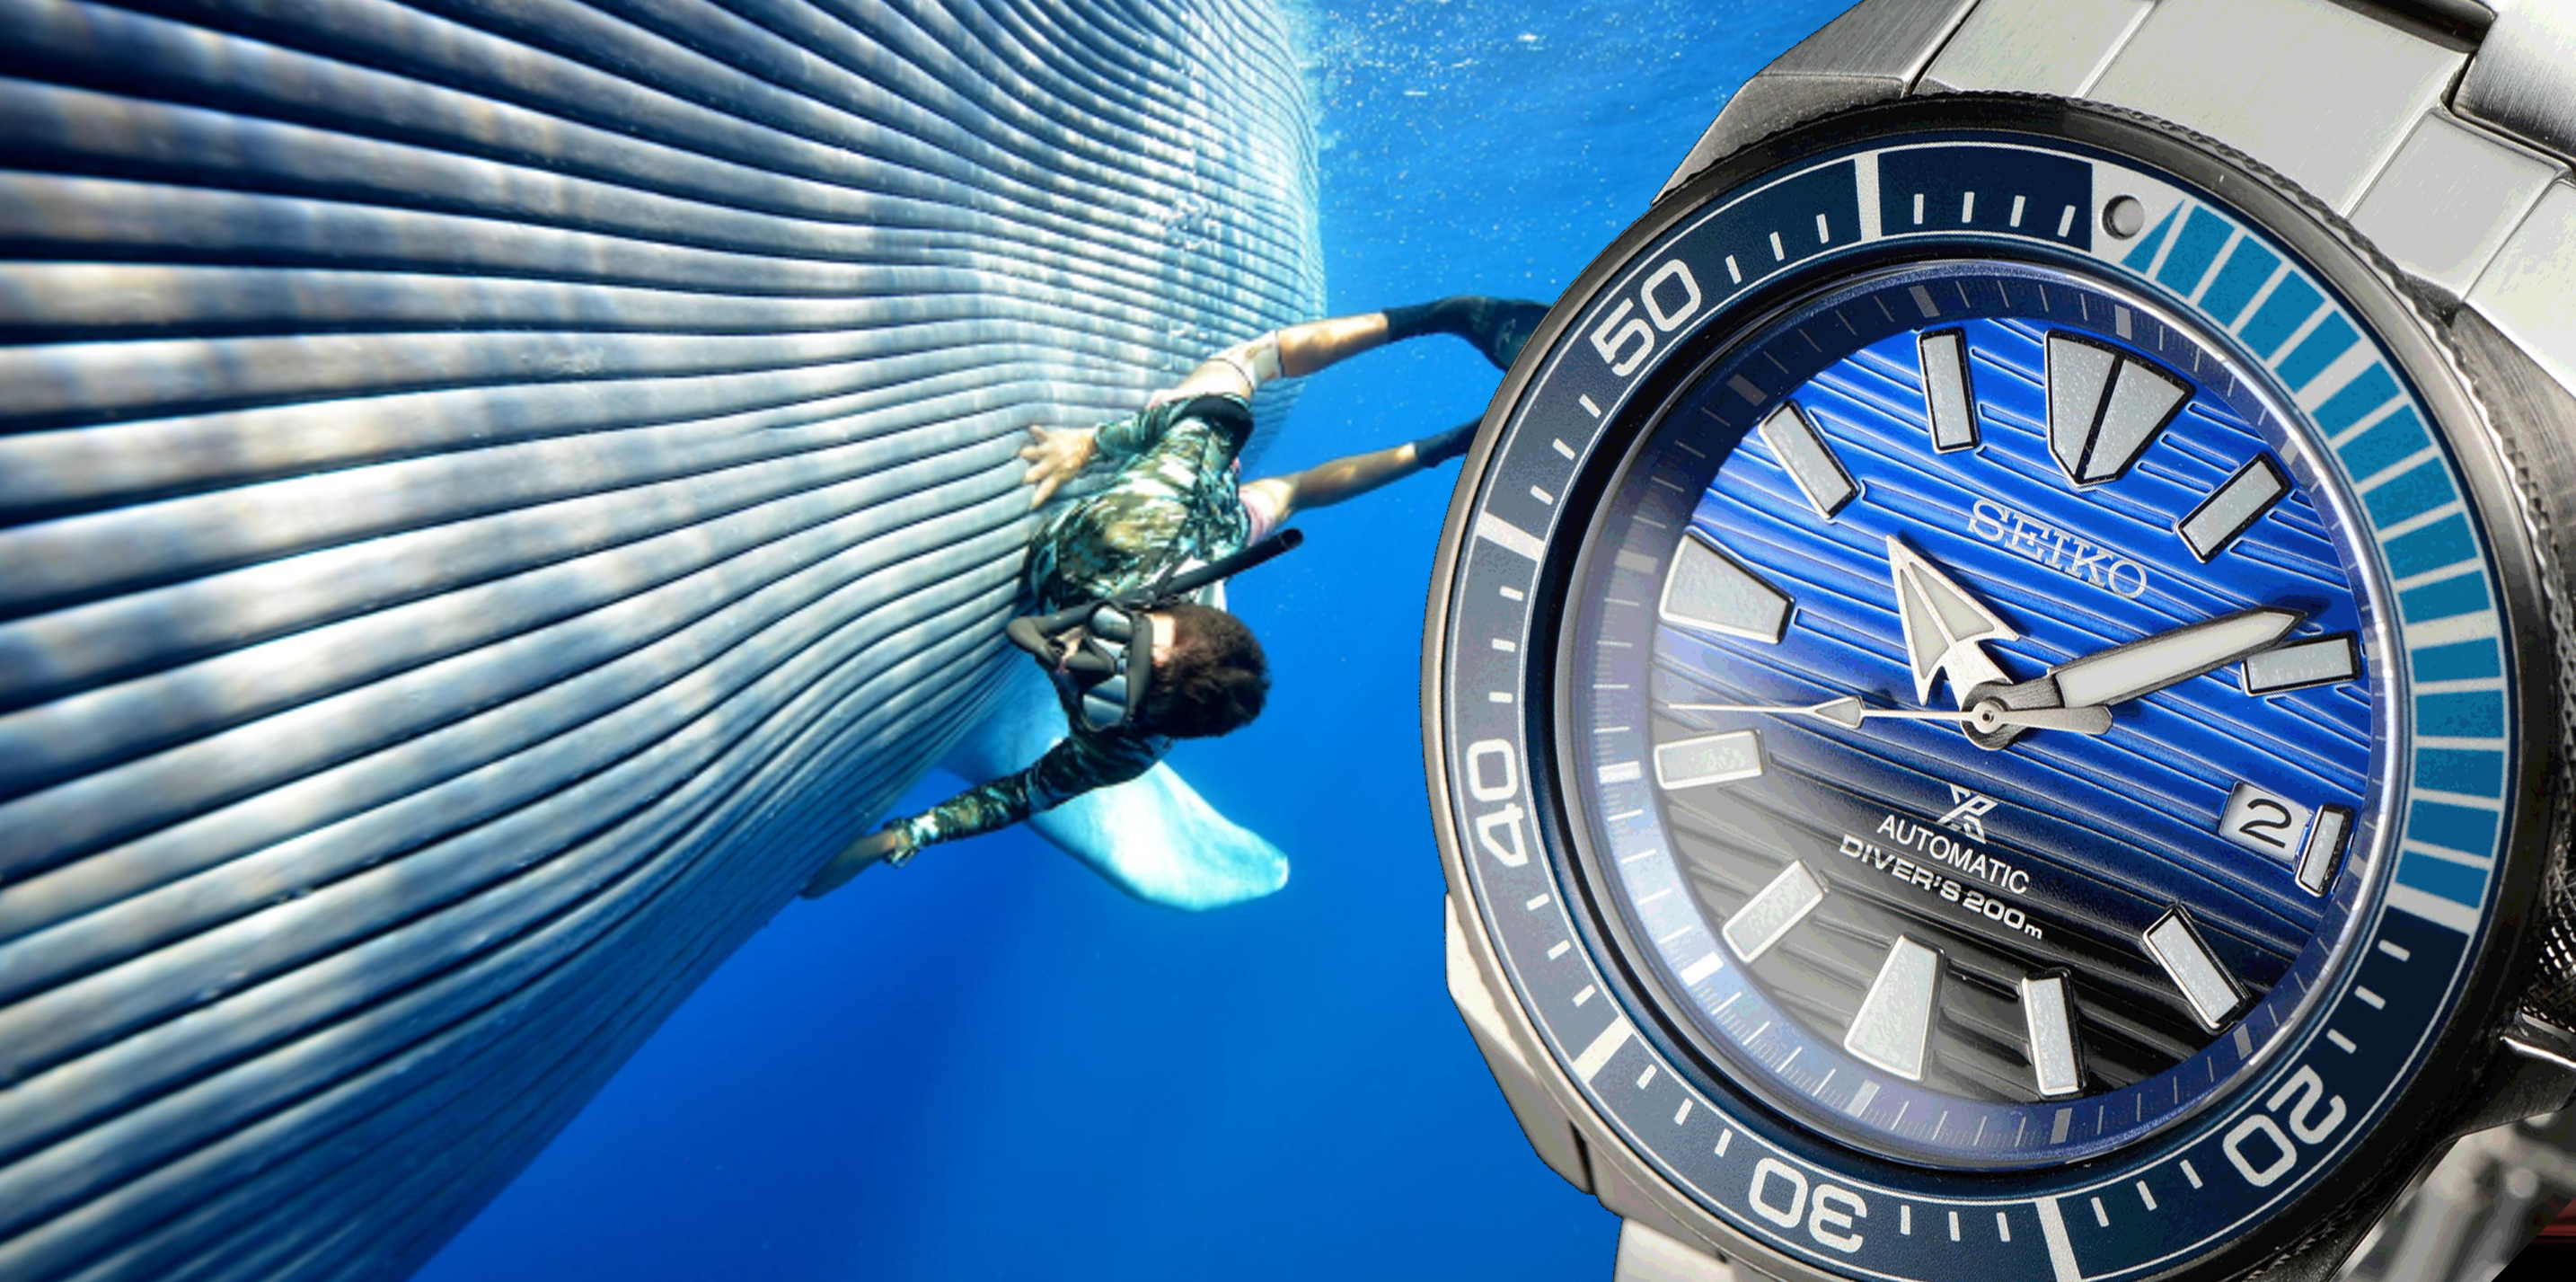 seiko-save-the-ocean-kek-balna.jpg